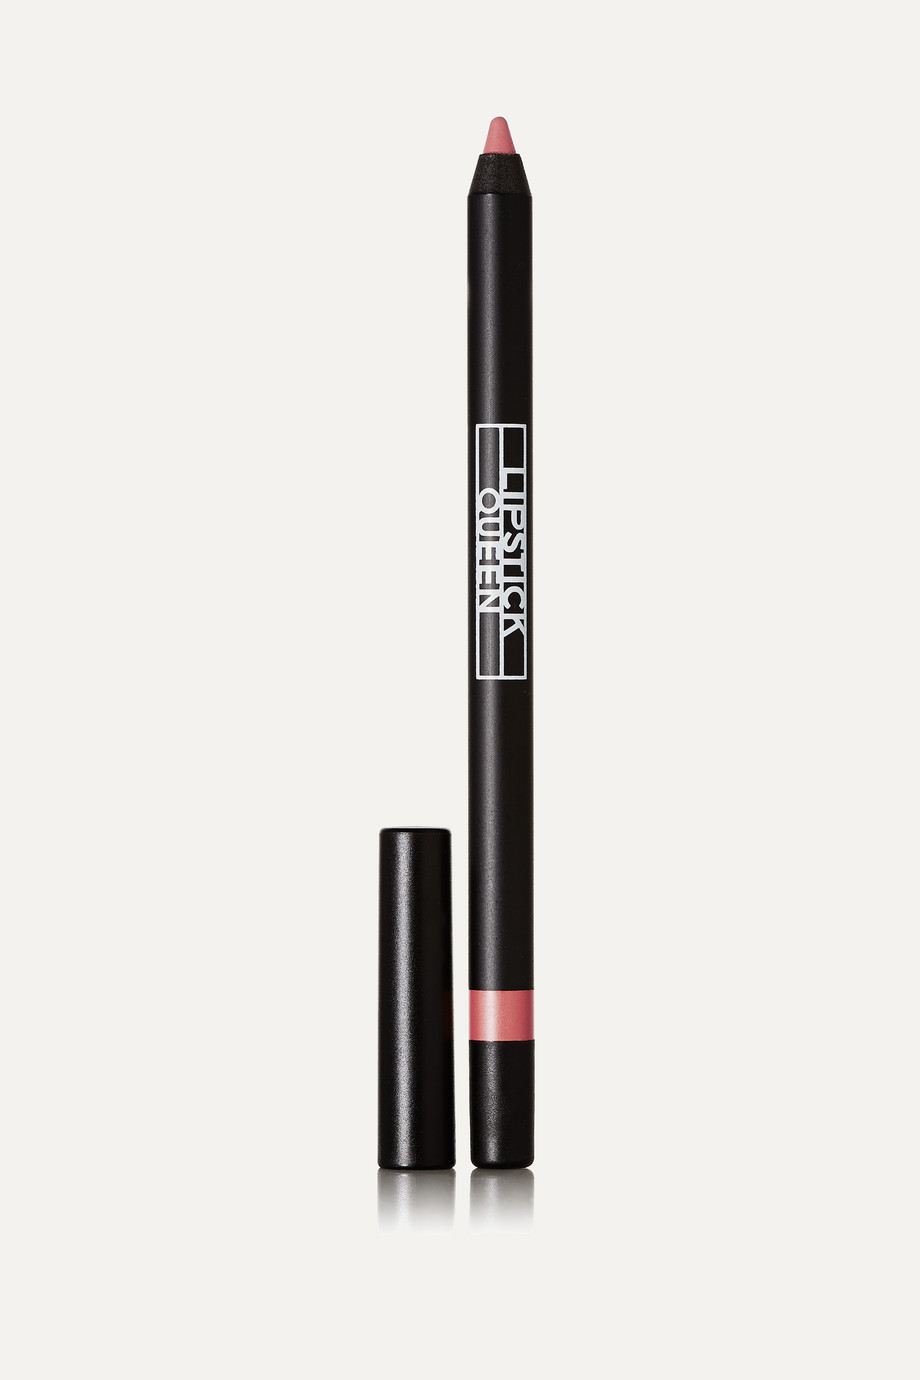 Lip Liner - Bare Nude, by Lipstick Queen